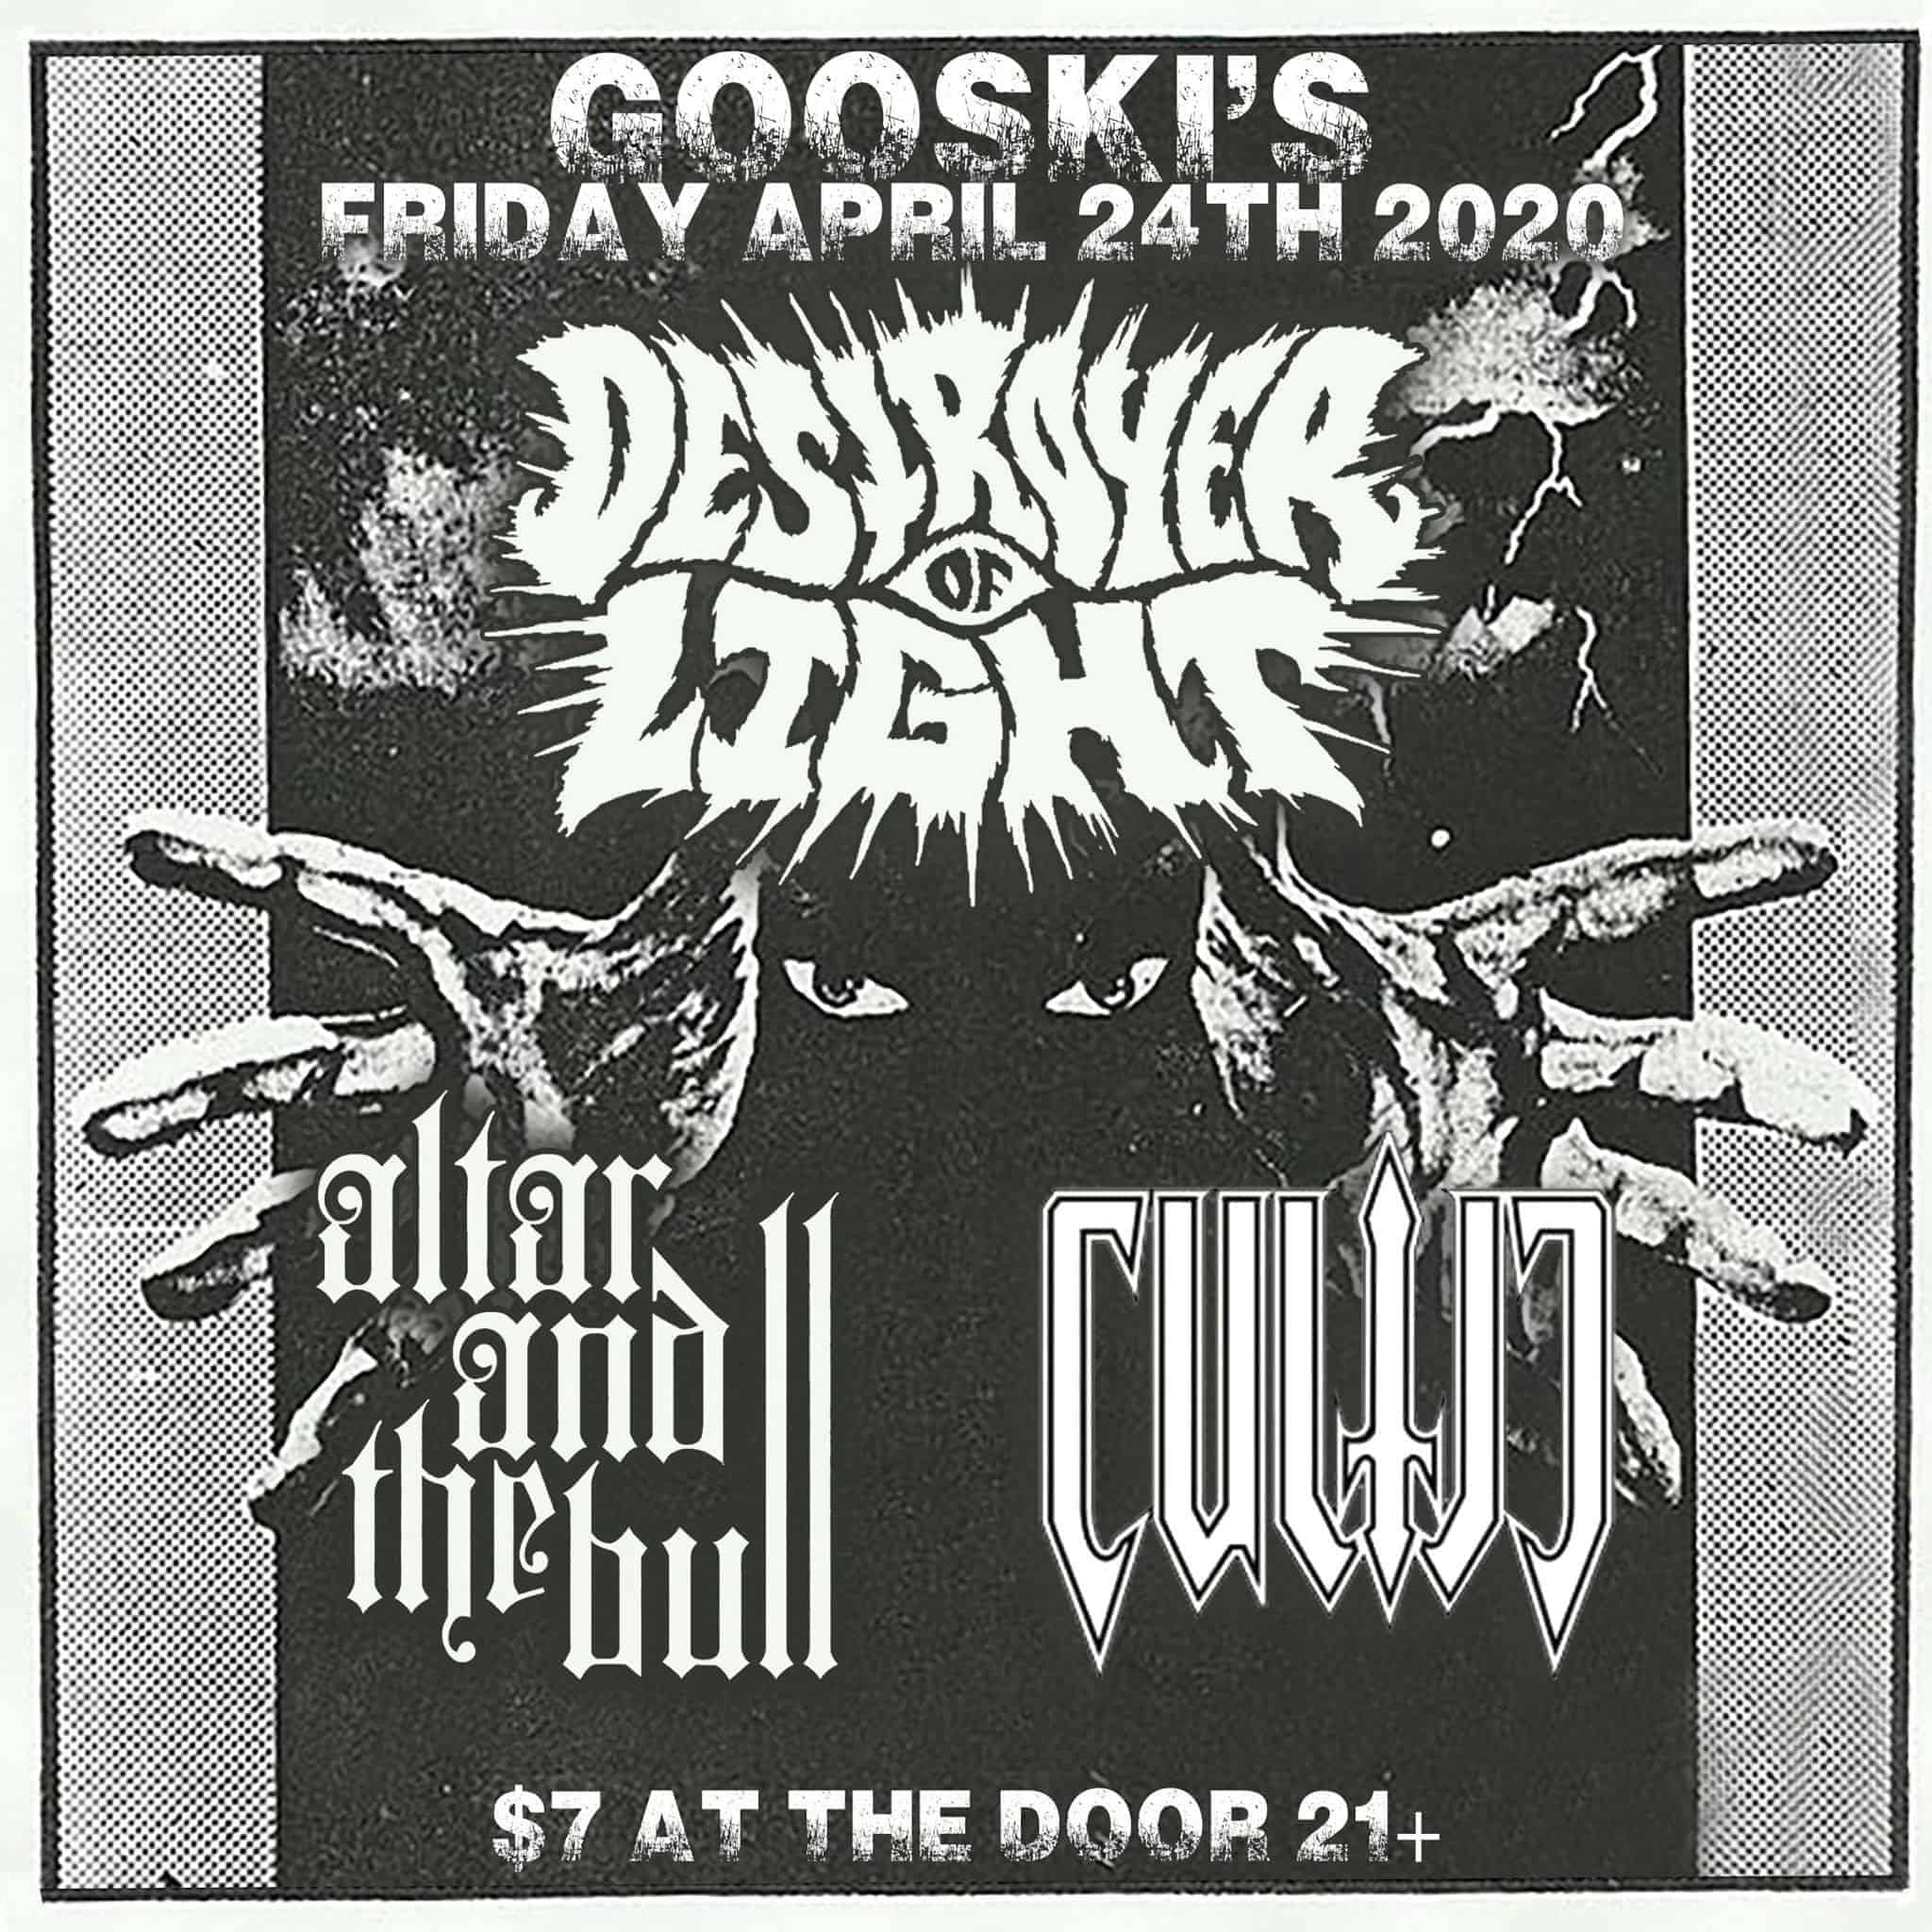 Destroyer of Ligh, Cultic, and Altar and the Bull - Show Flyer - April 24, 2020